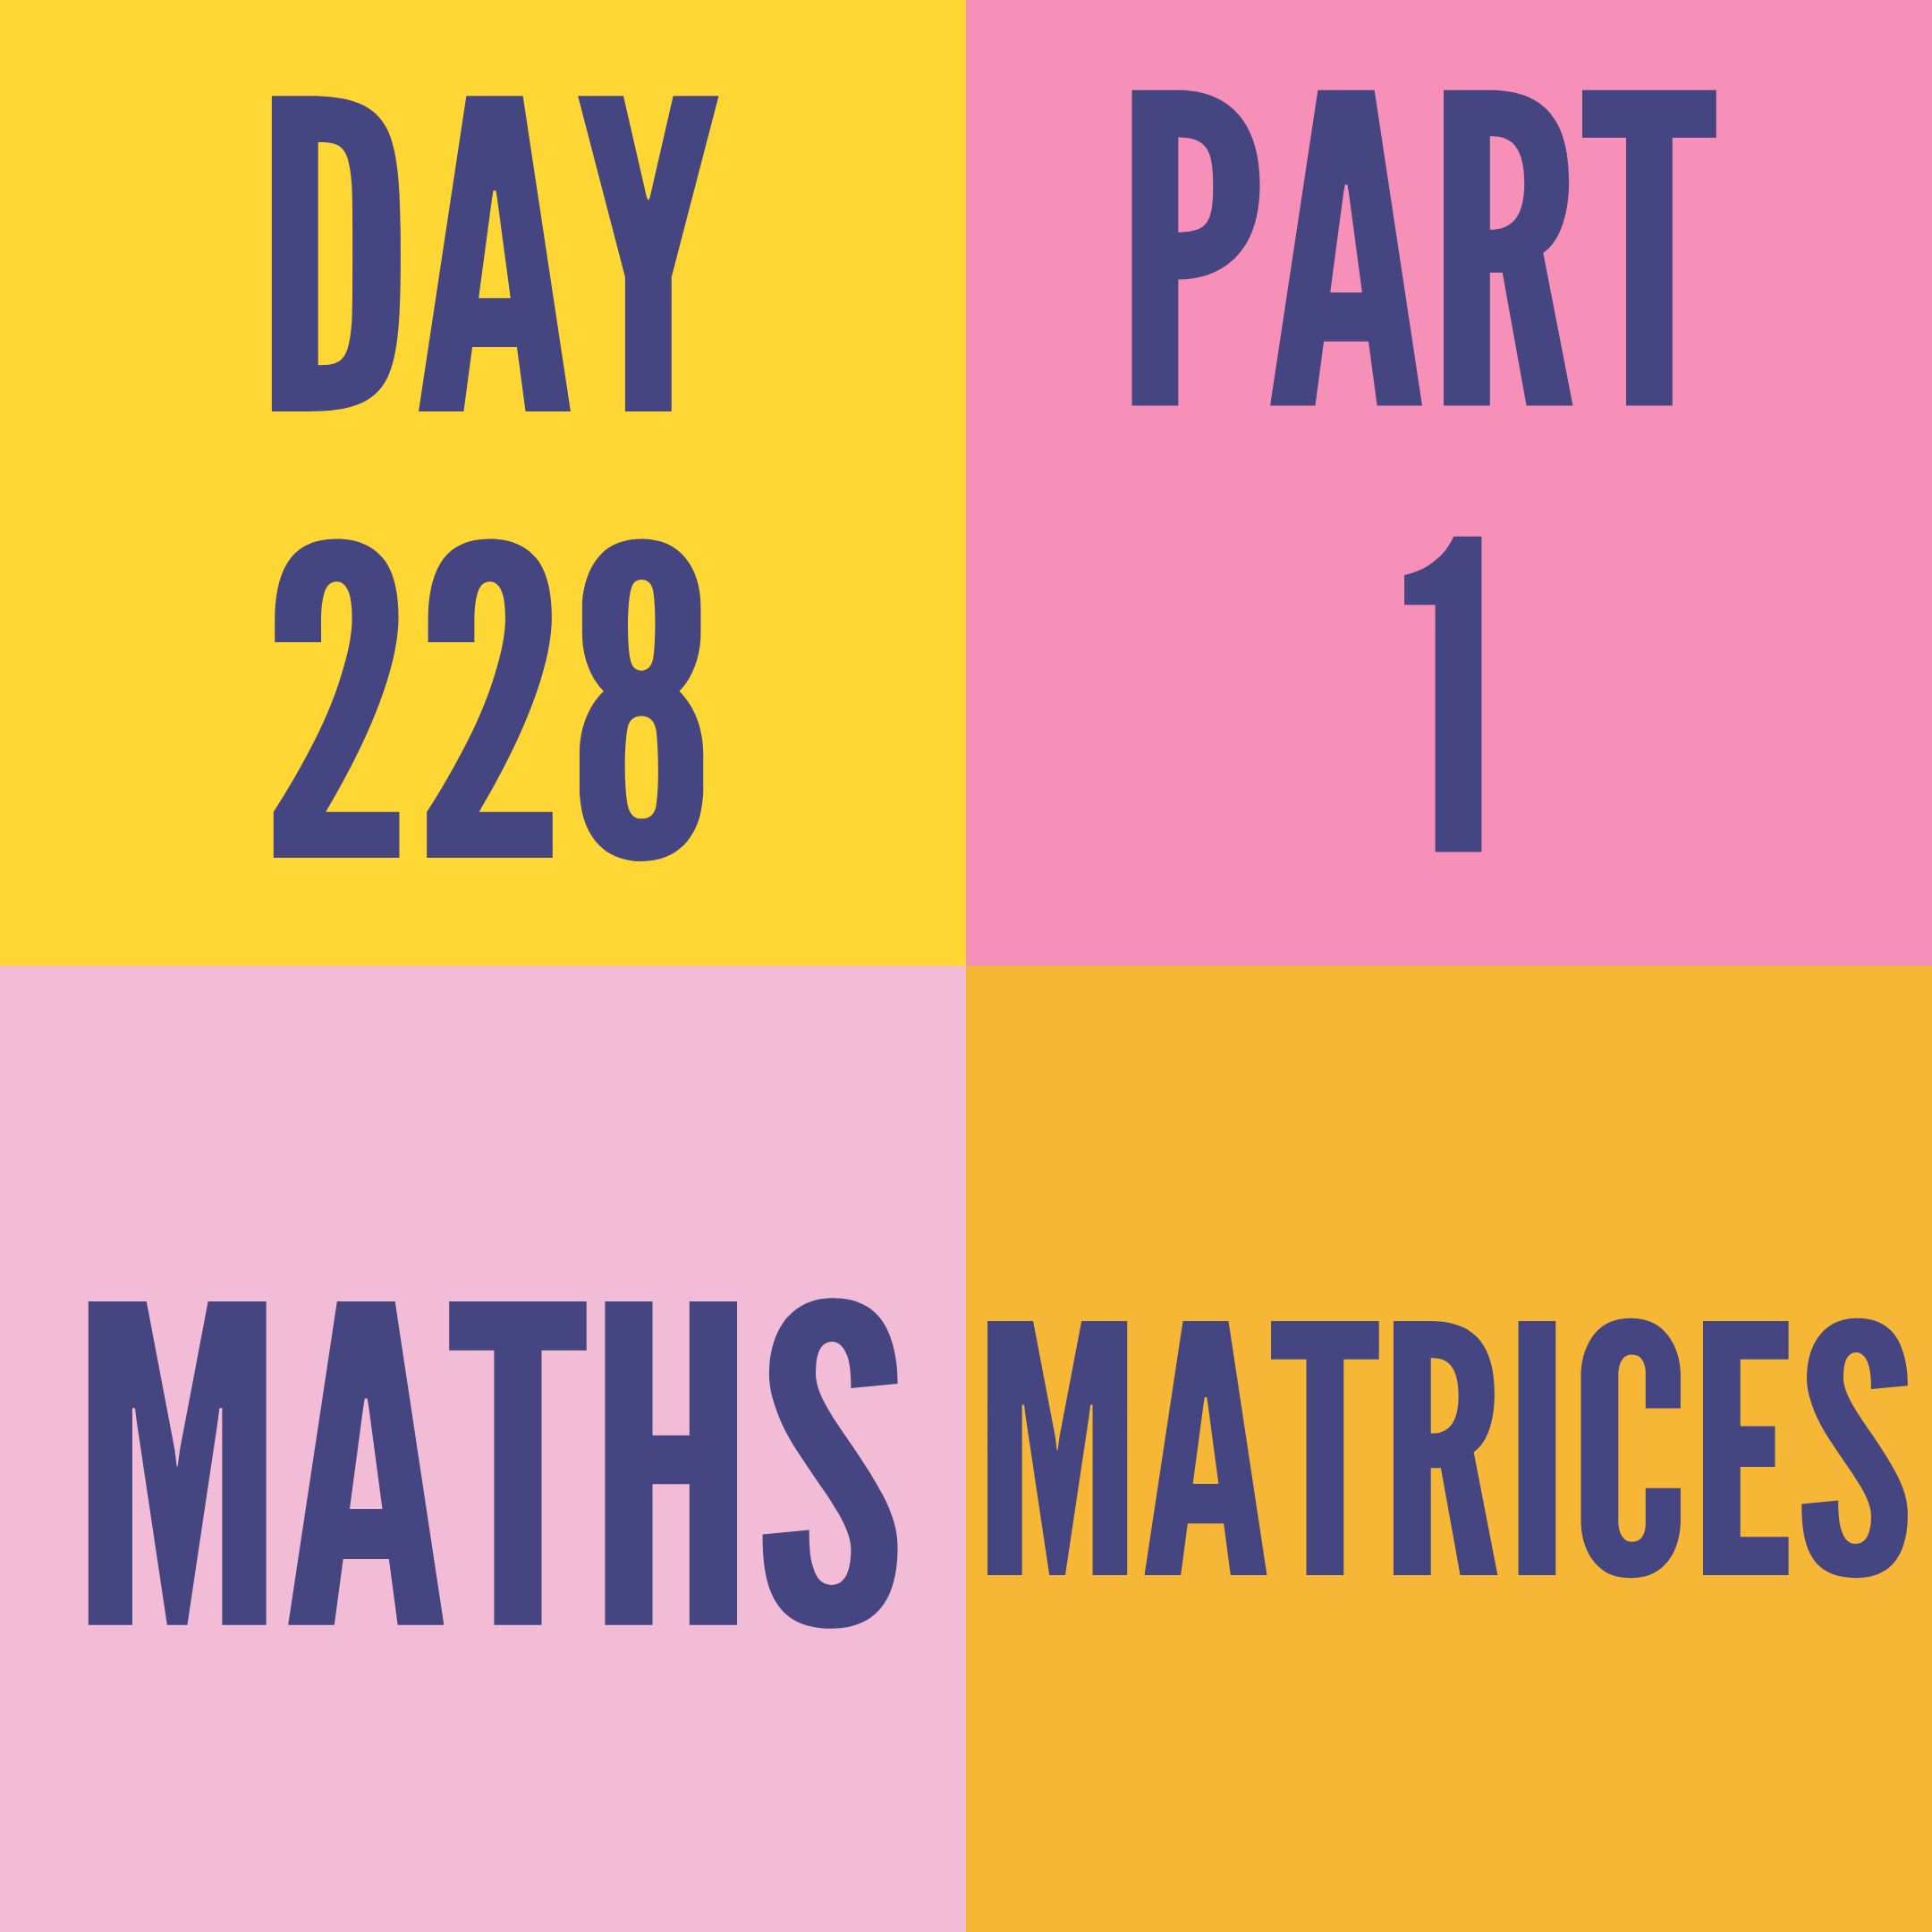 DAY-228 PART-1 MATRICES